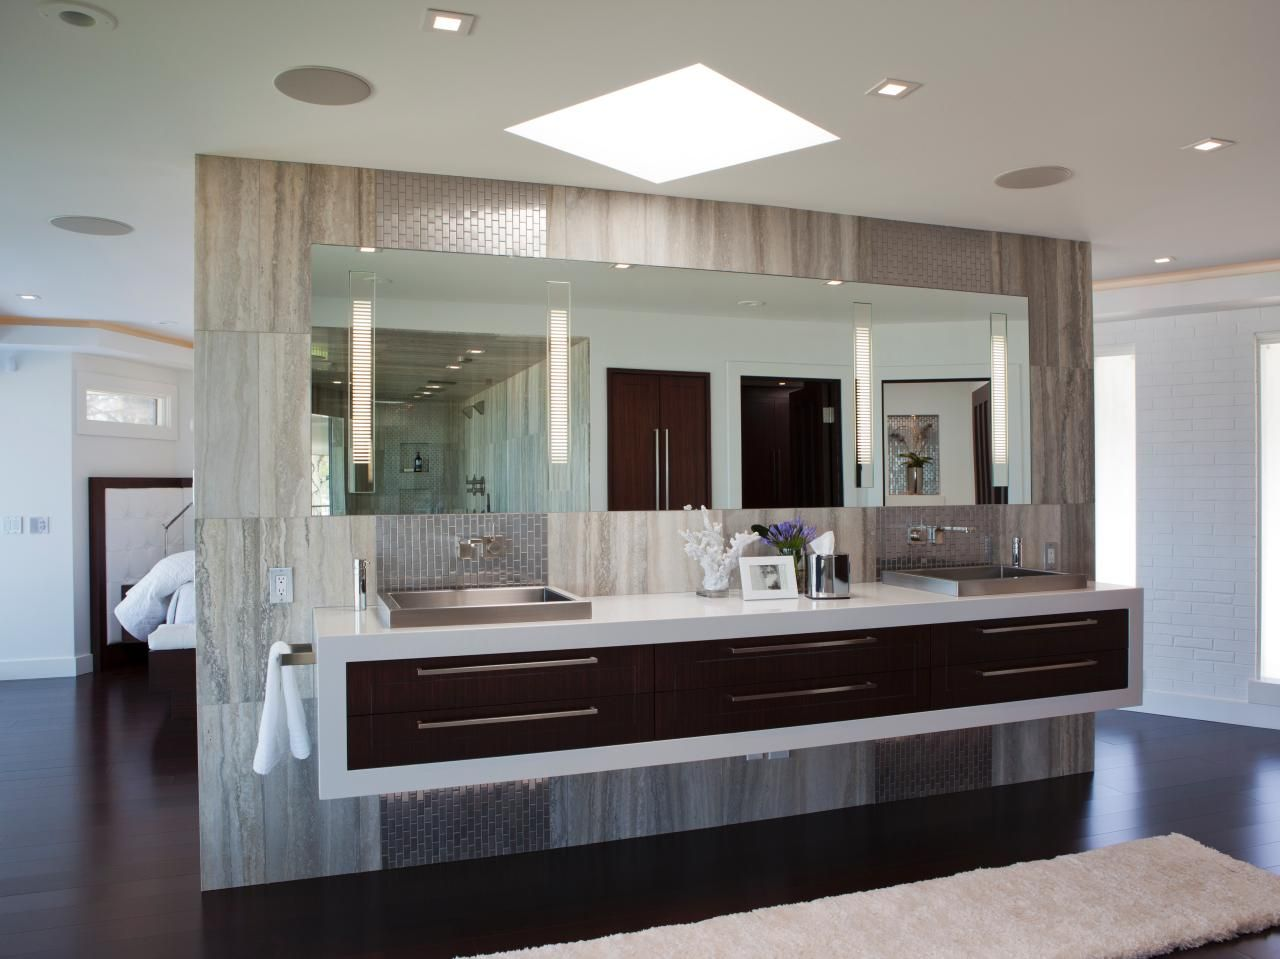 Web Image Gallery This open layout bedroom features a fabulous master bathroom with a floating double vanity Gray tile and chrome fixtures give the space a sleek